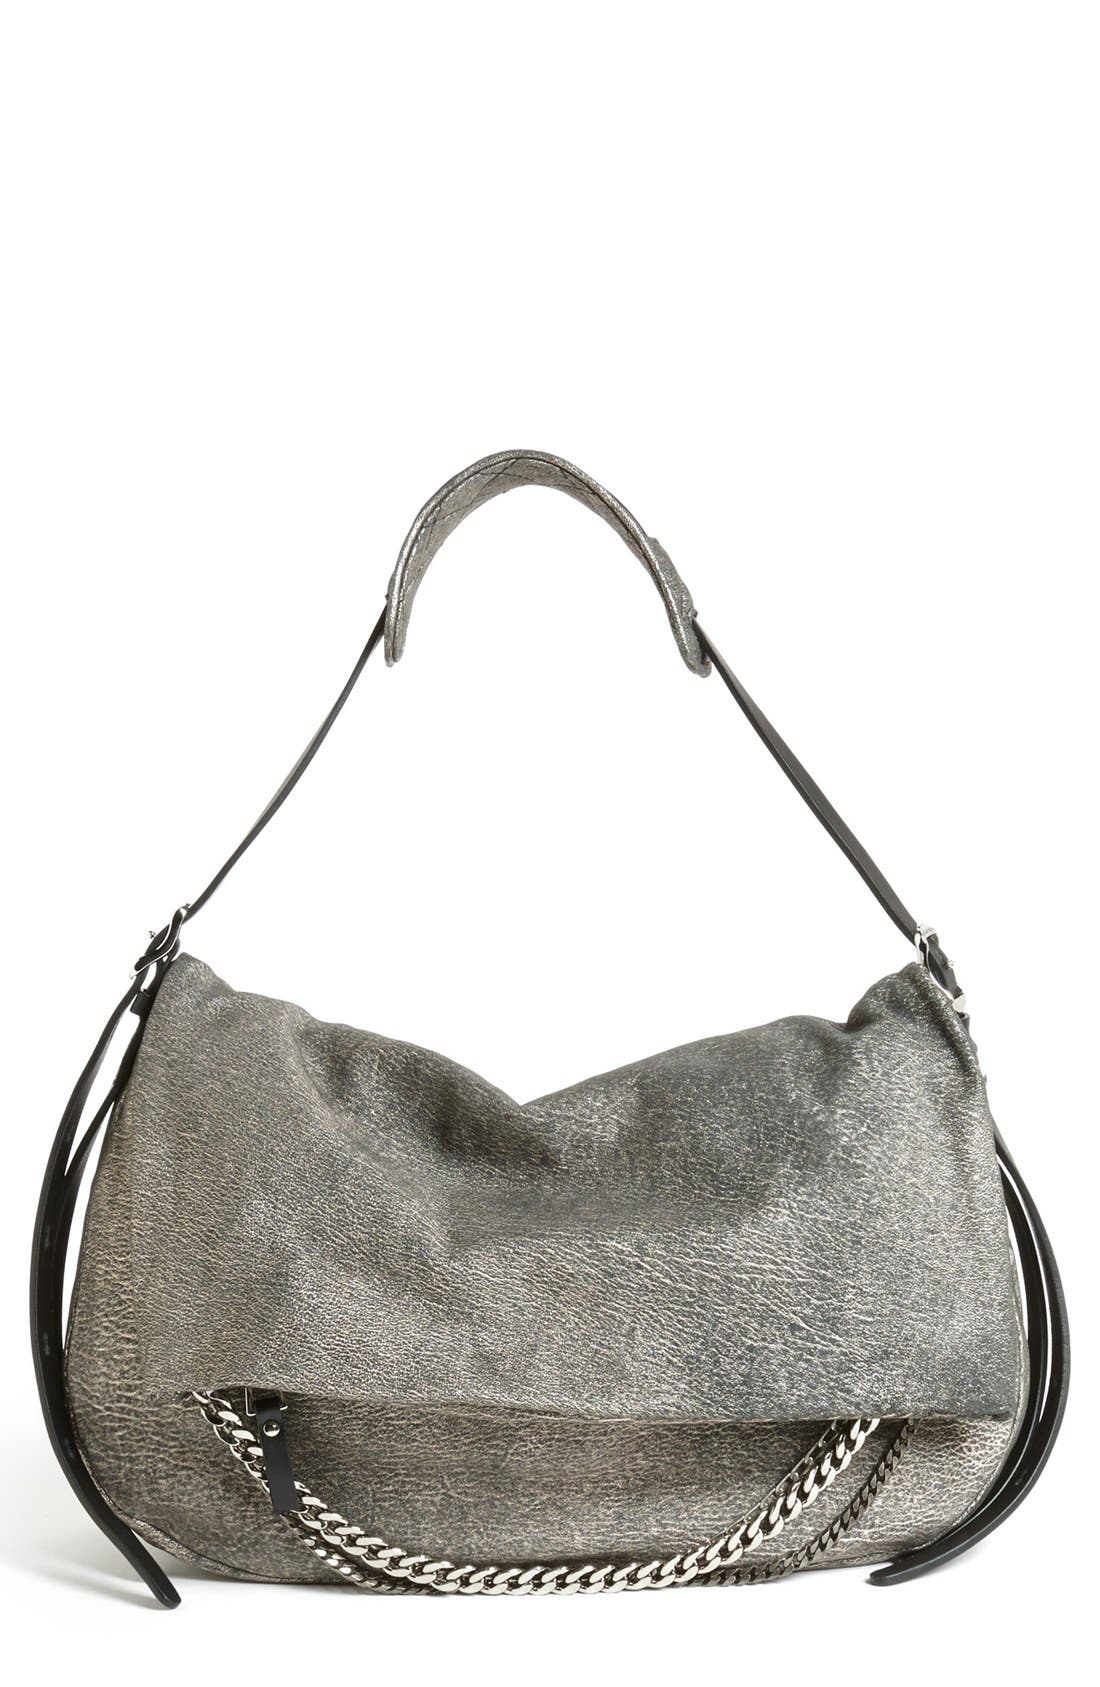 Main Image - Jimmy Choo 'Biker - Large' Metallic Suede Shoulder Bag